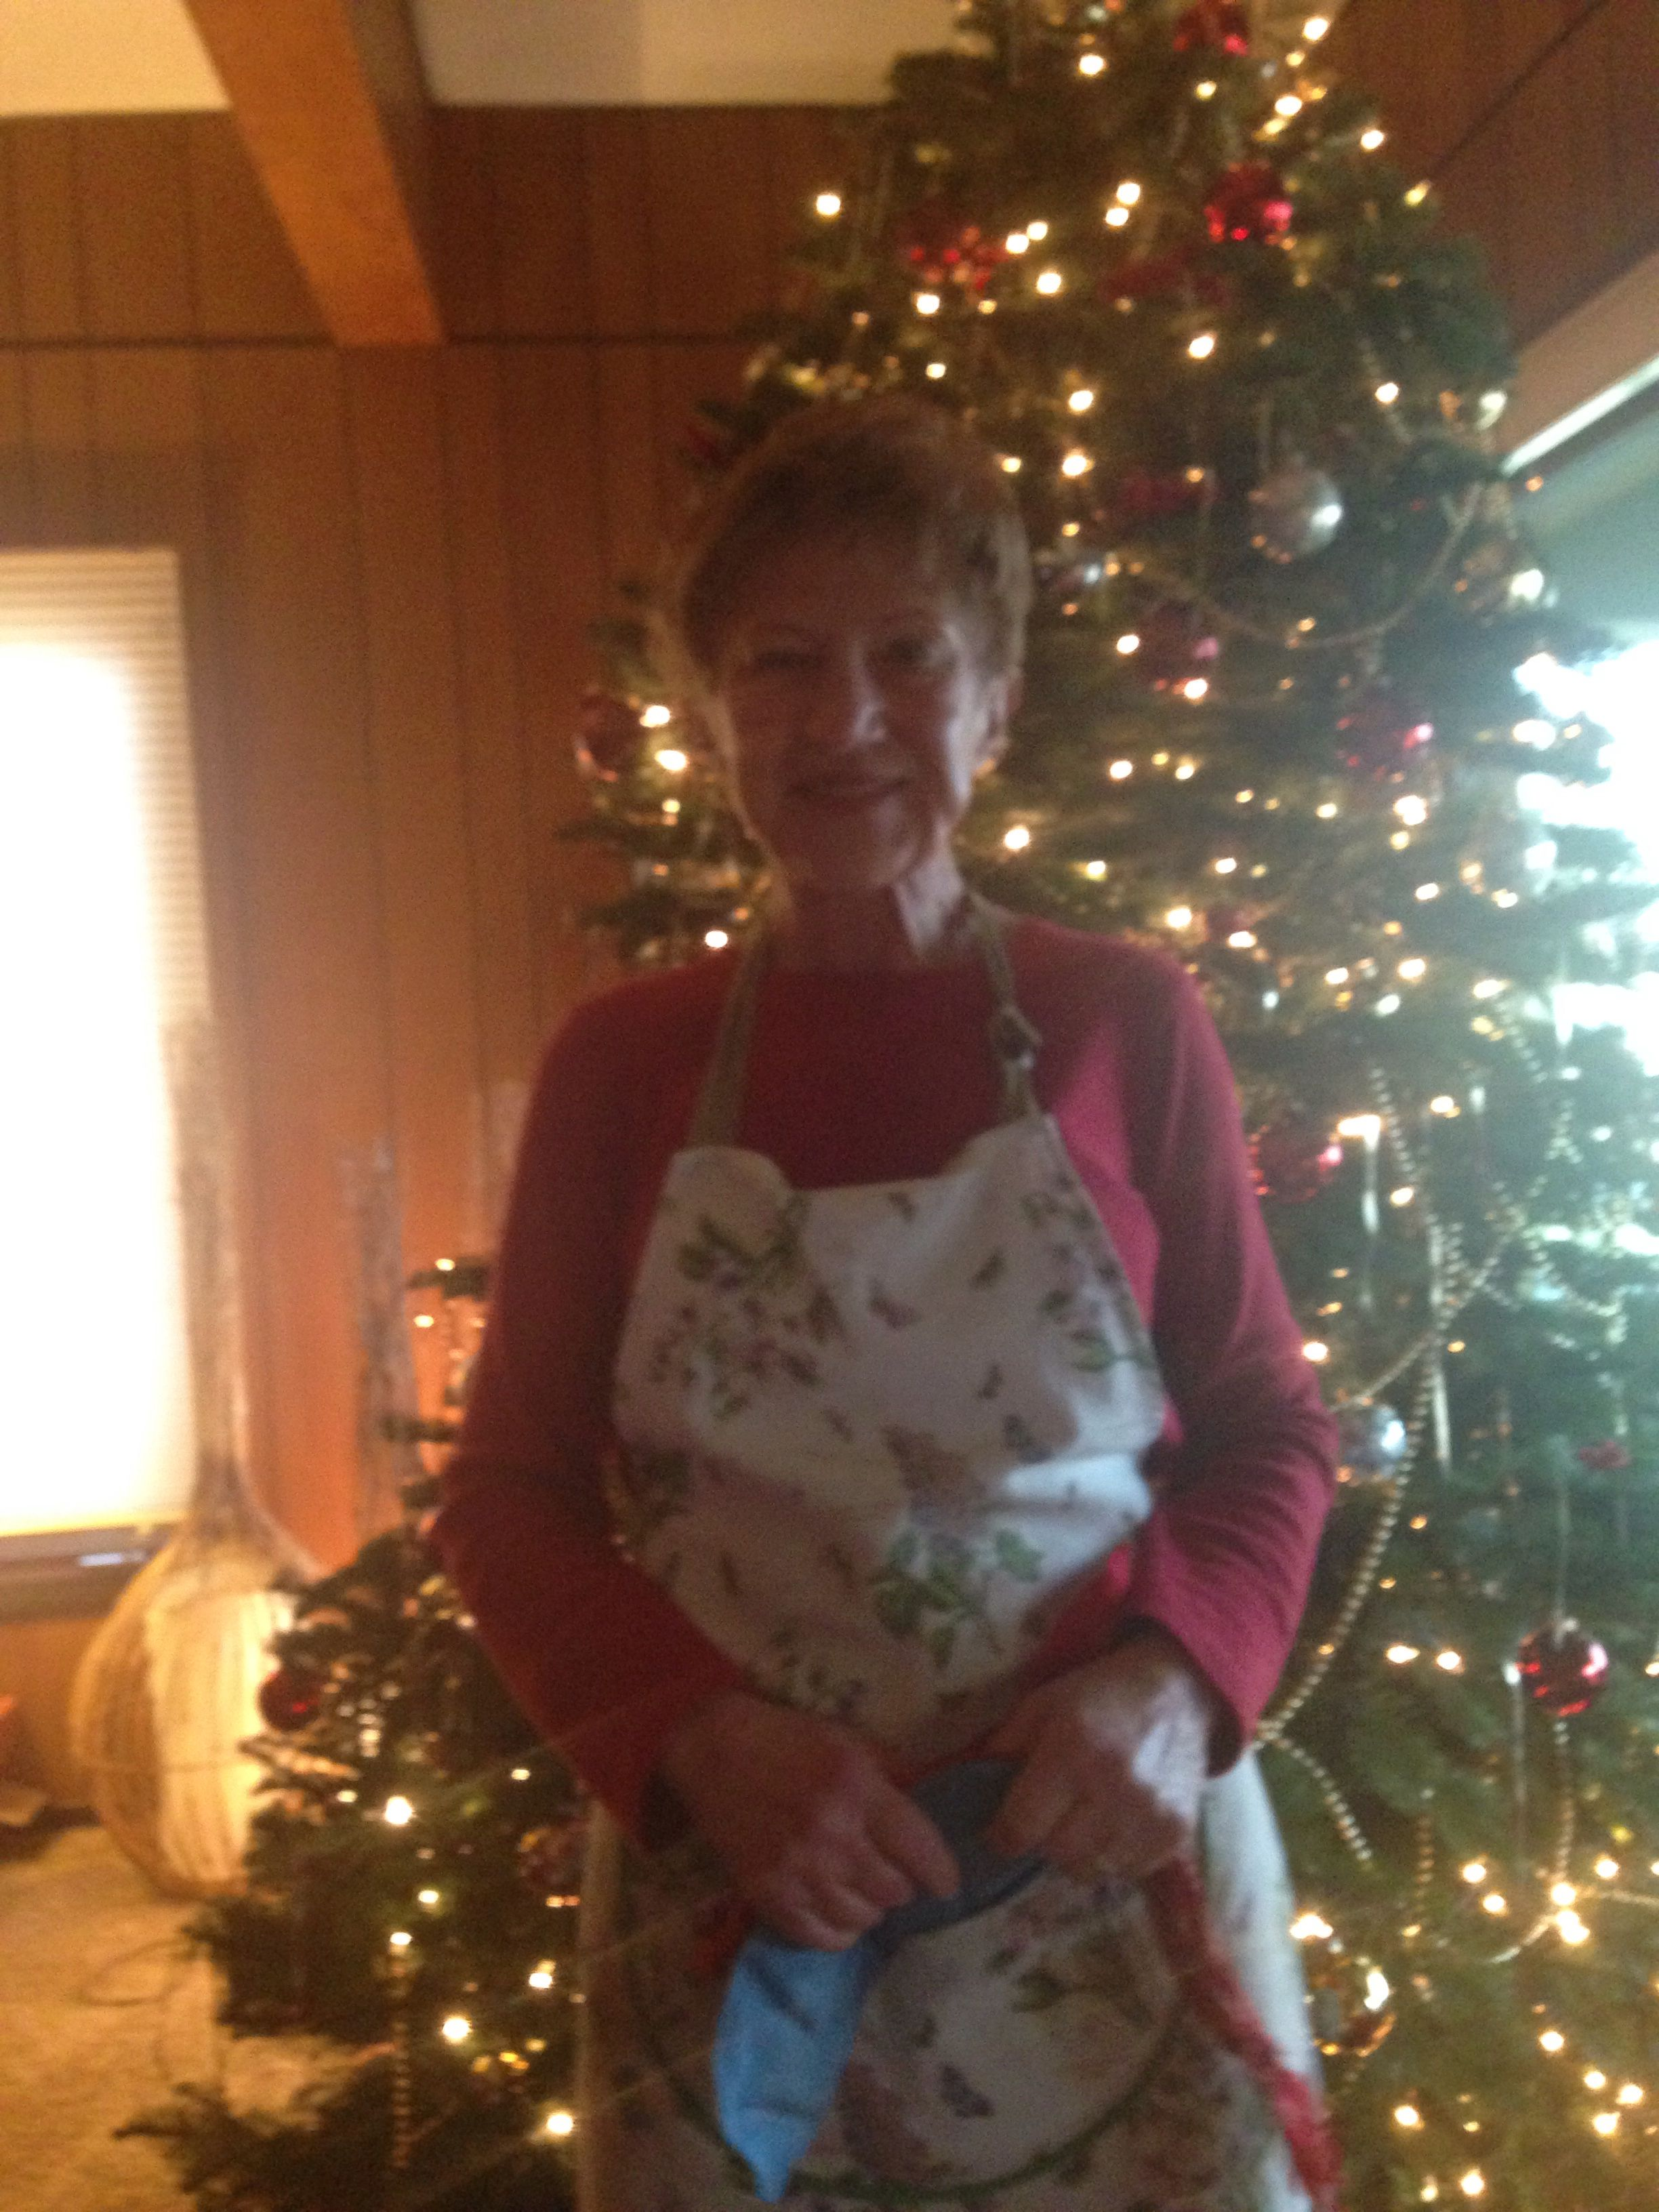 My grandmother in front of the Christmas tree